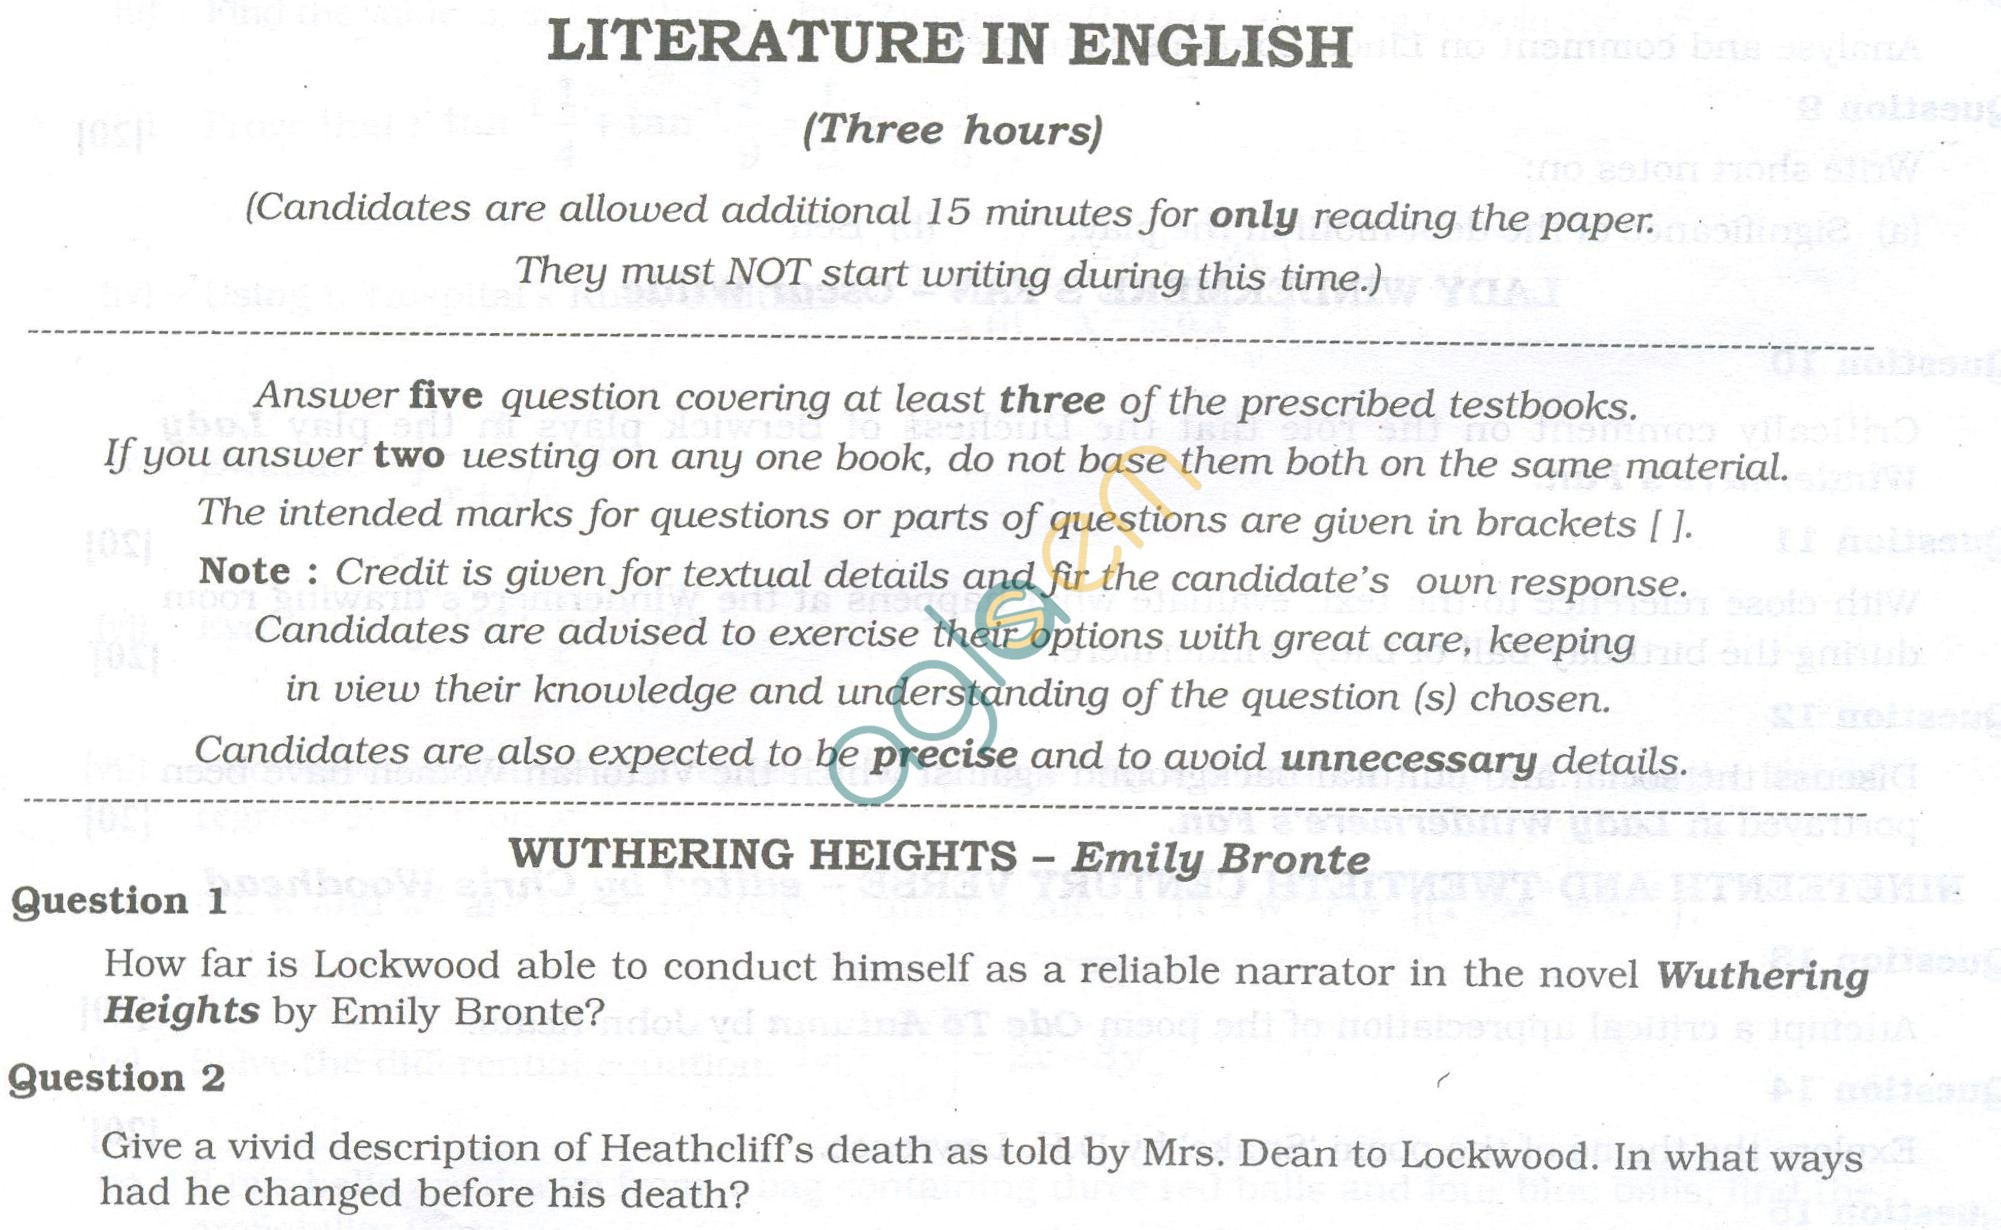 ISC Question Papers 2013 for Class 12 - Literature in English